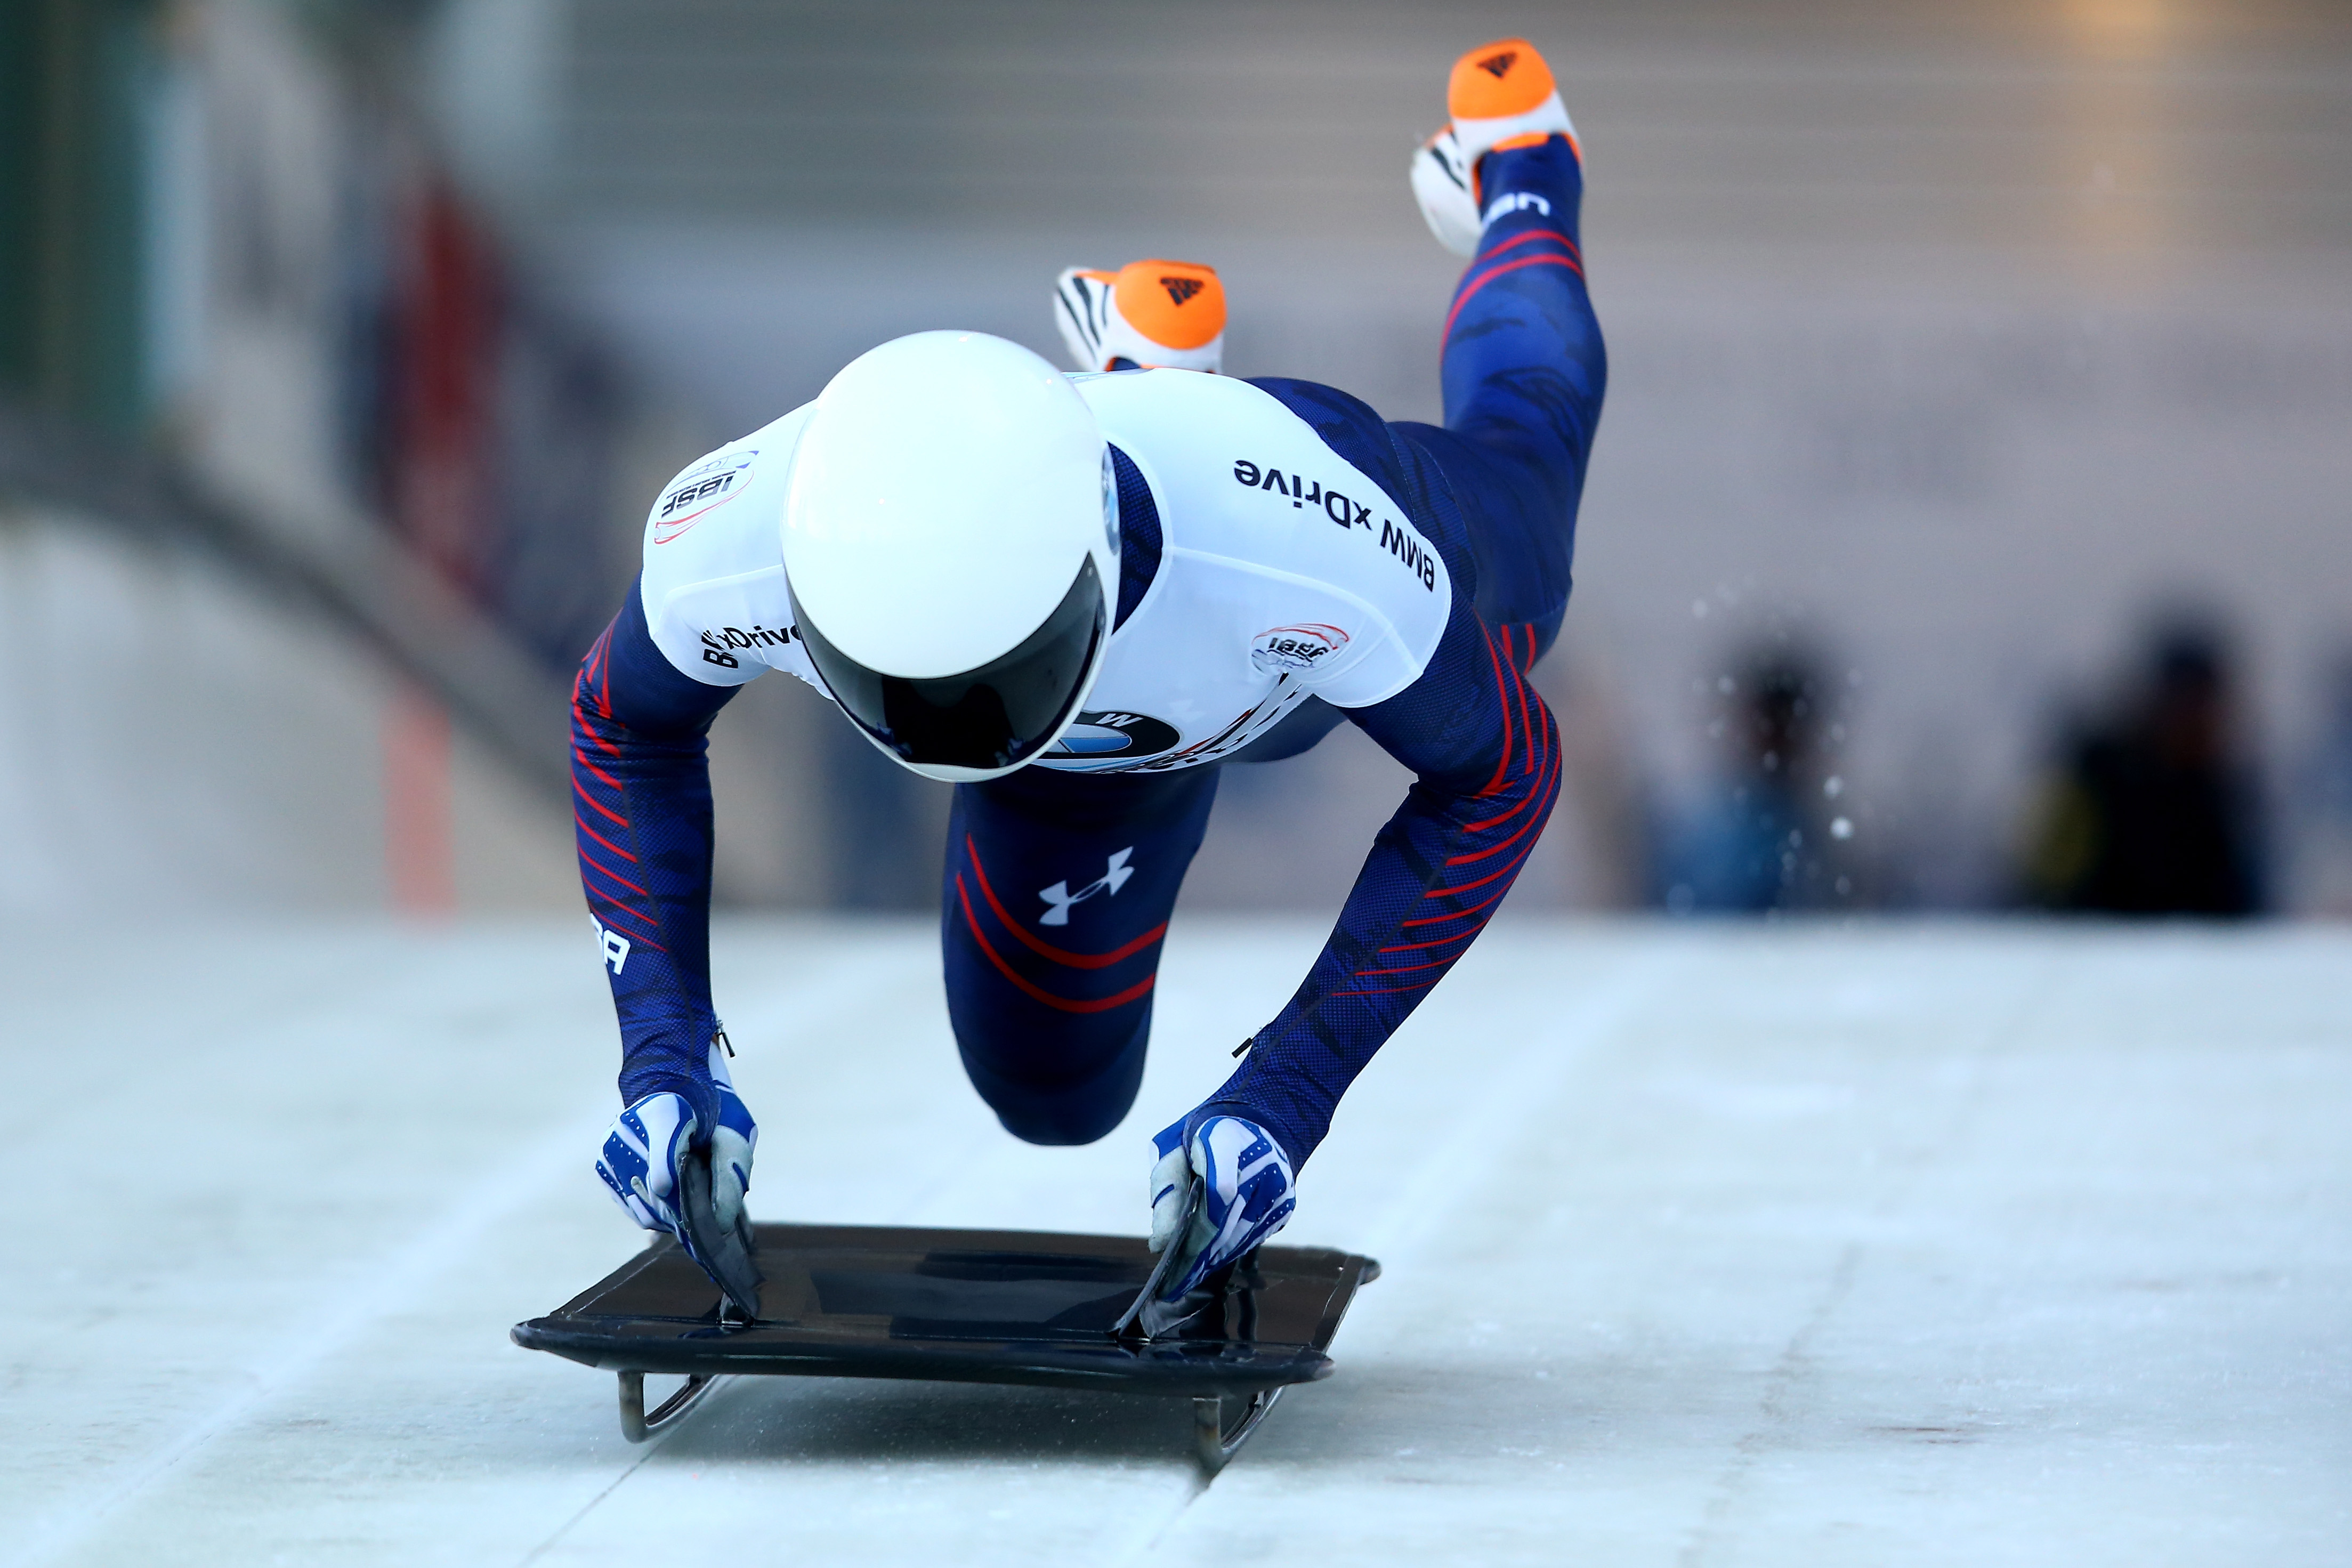 Matthew Antoine of United States competes in his first run of the men's skeleton competition during the BMW IBSF Bob & Skeleton Worldcup at Veltins Eis-Arena on December 4, 2015 in Winterberg, Germany. Christof Koepsel—Bongarts/Getty Images.